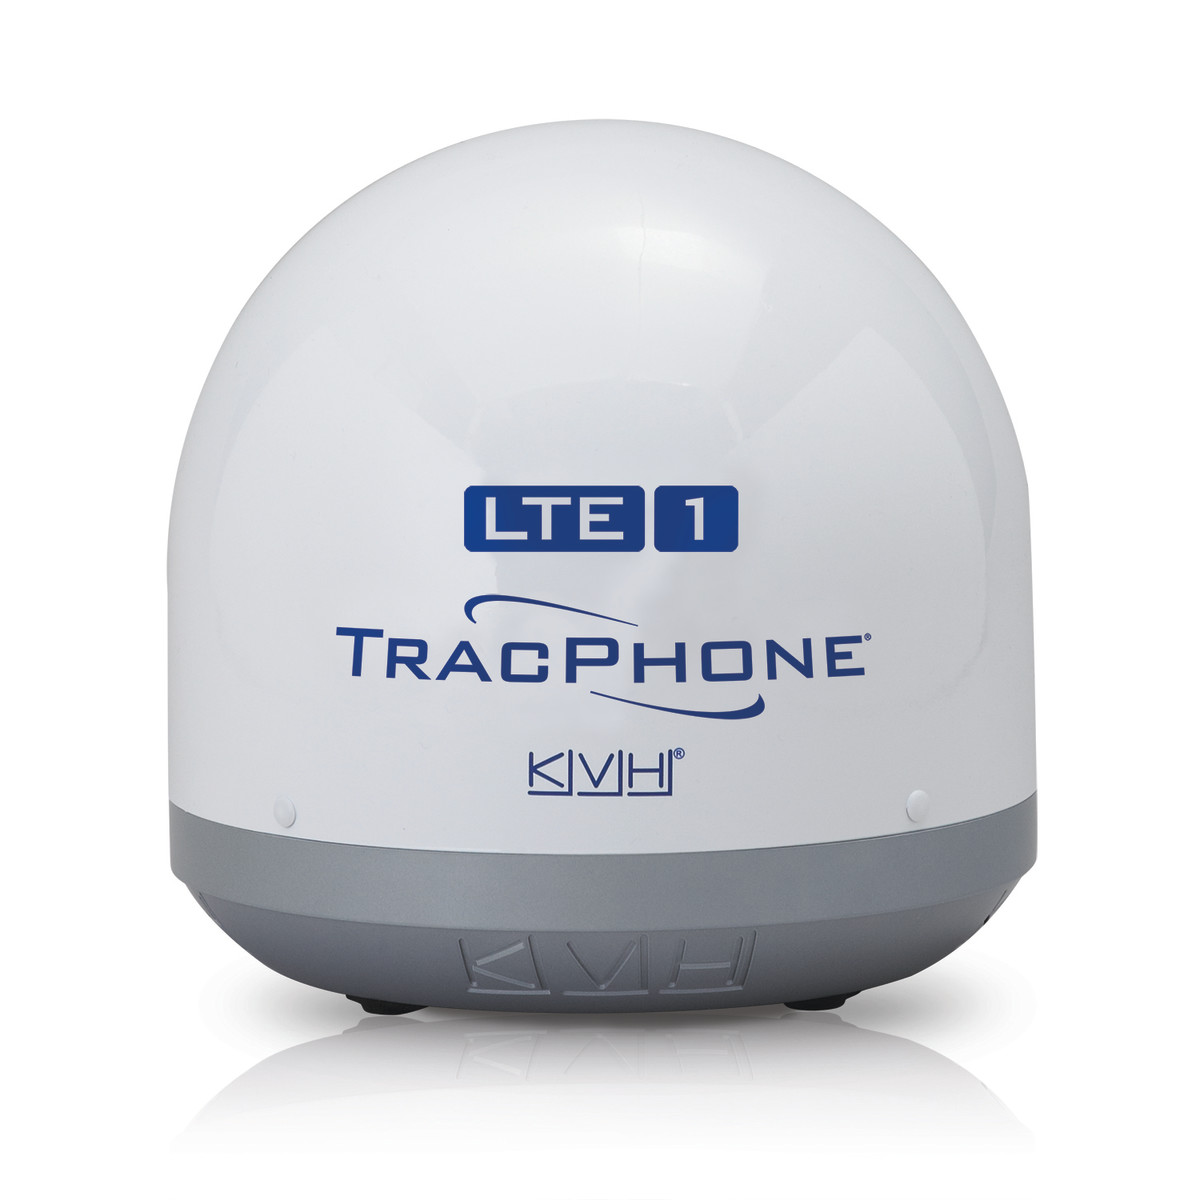 KVH TracPhone LTE-1 marine communications system provides connectivity up to 20 miles offshore.